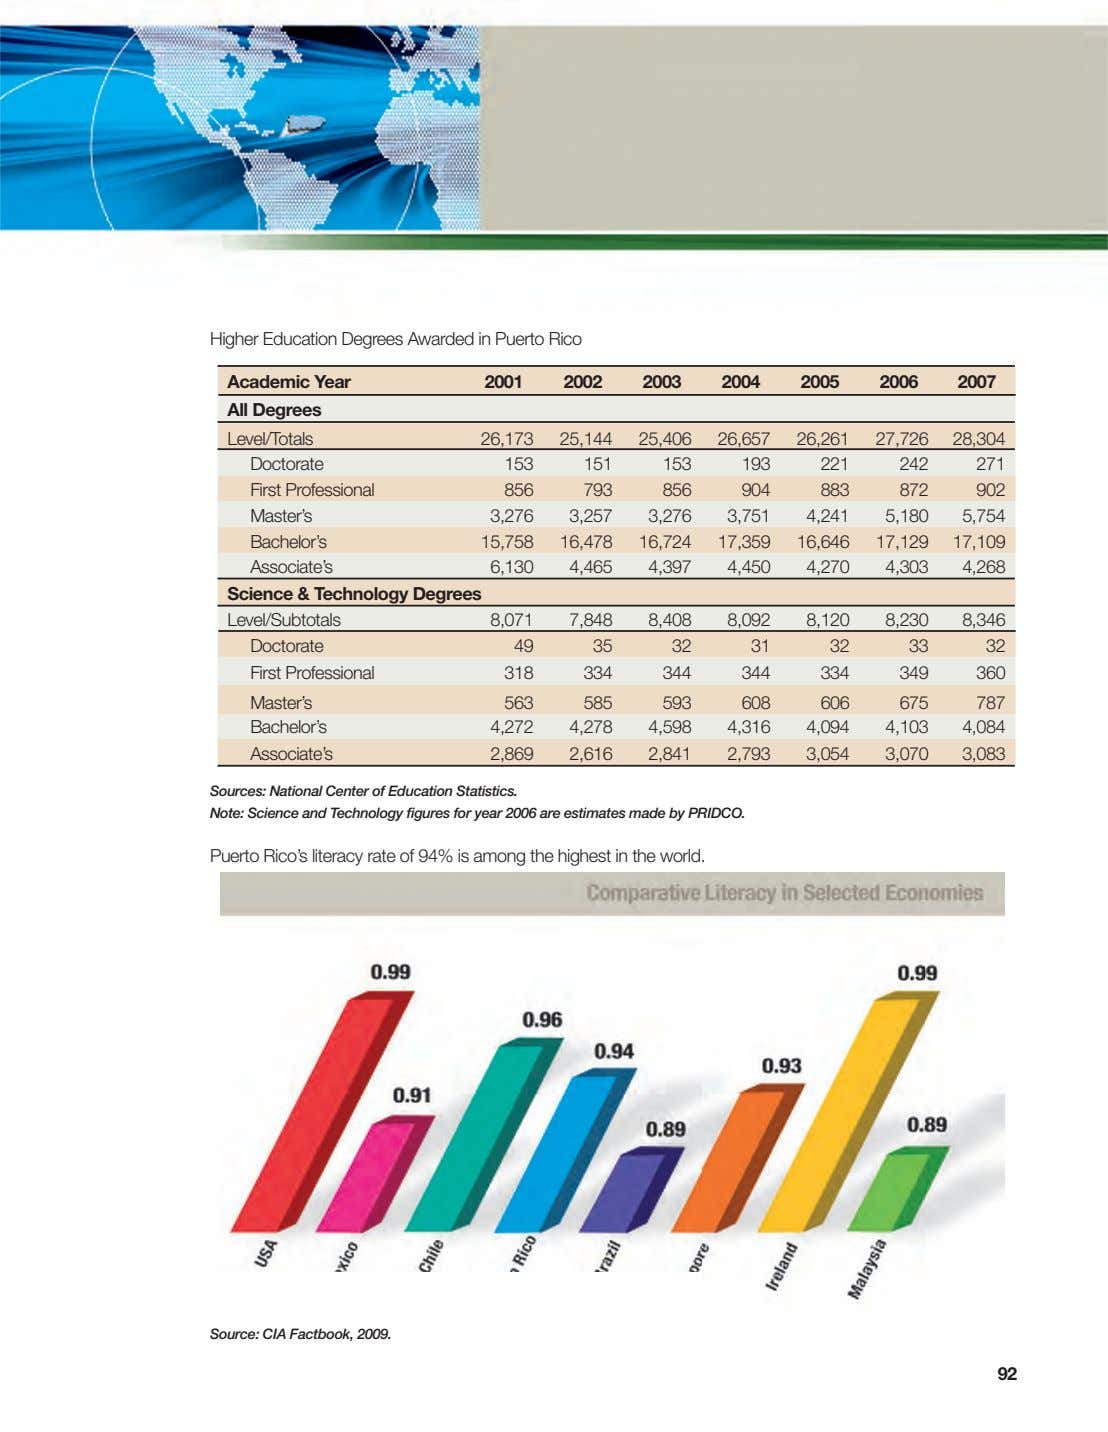 Higher Education Degrees Awarded in Puerto Rico Academic Year 2001 2002 2003 2004 2005 2006